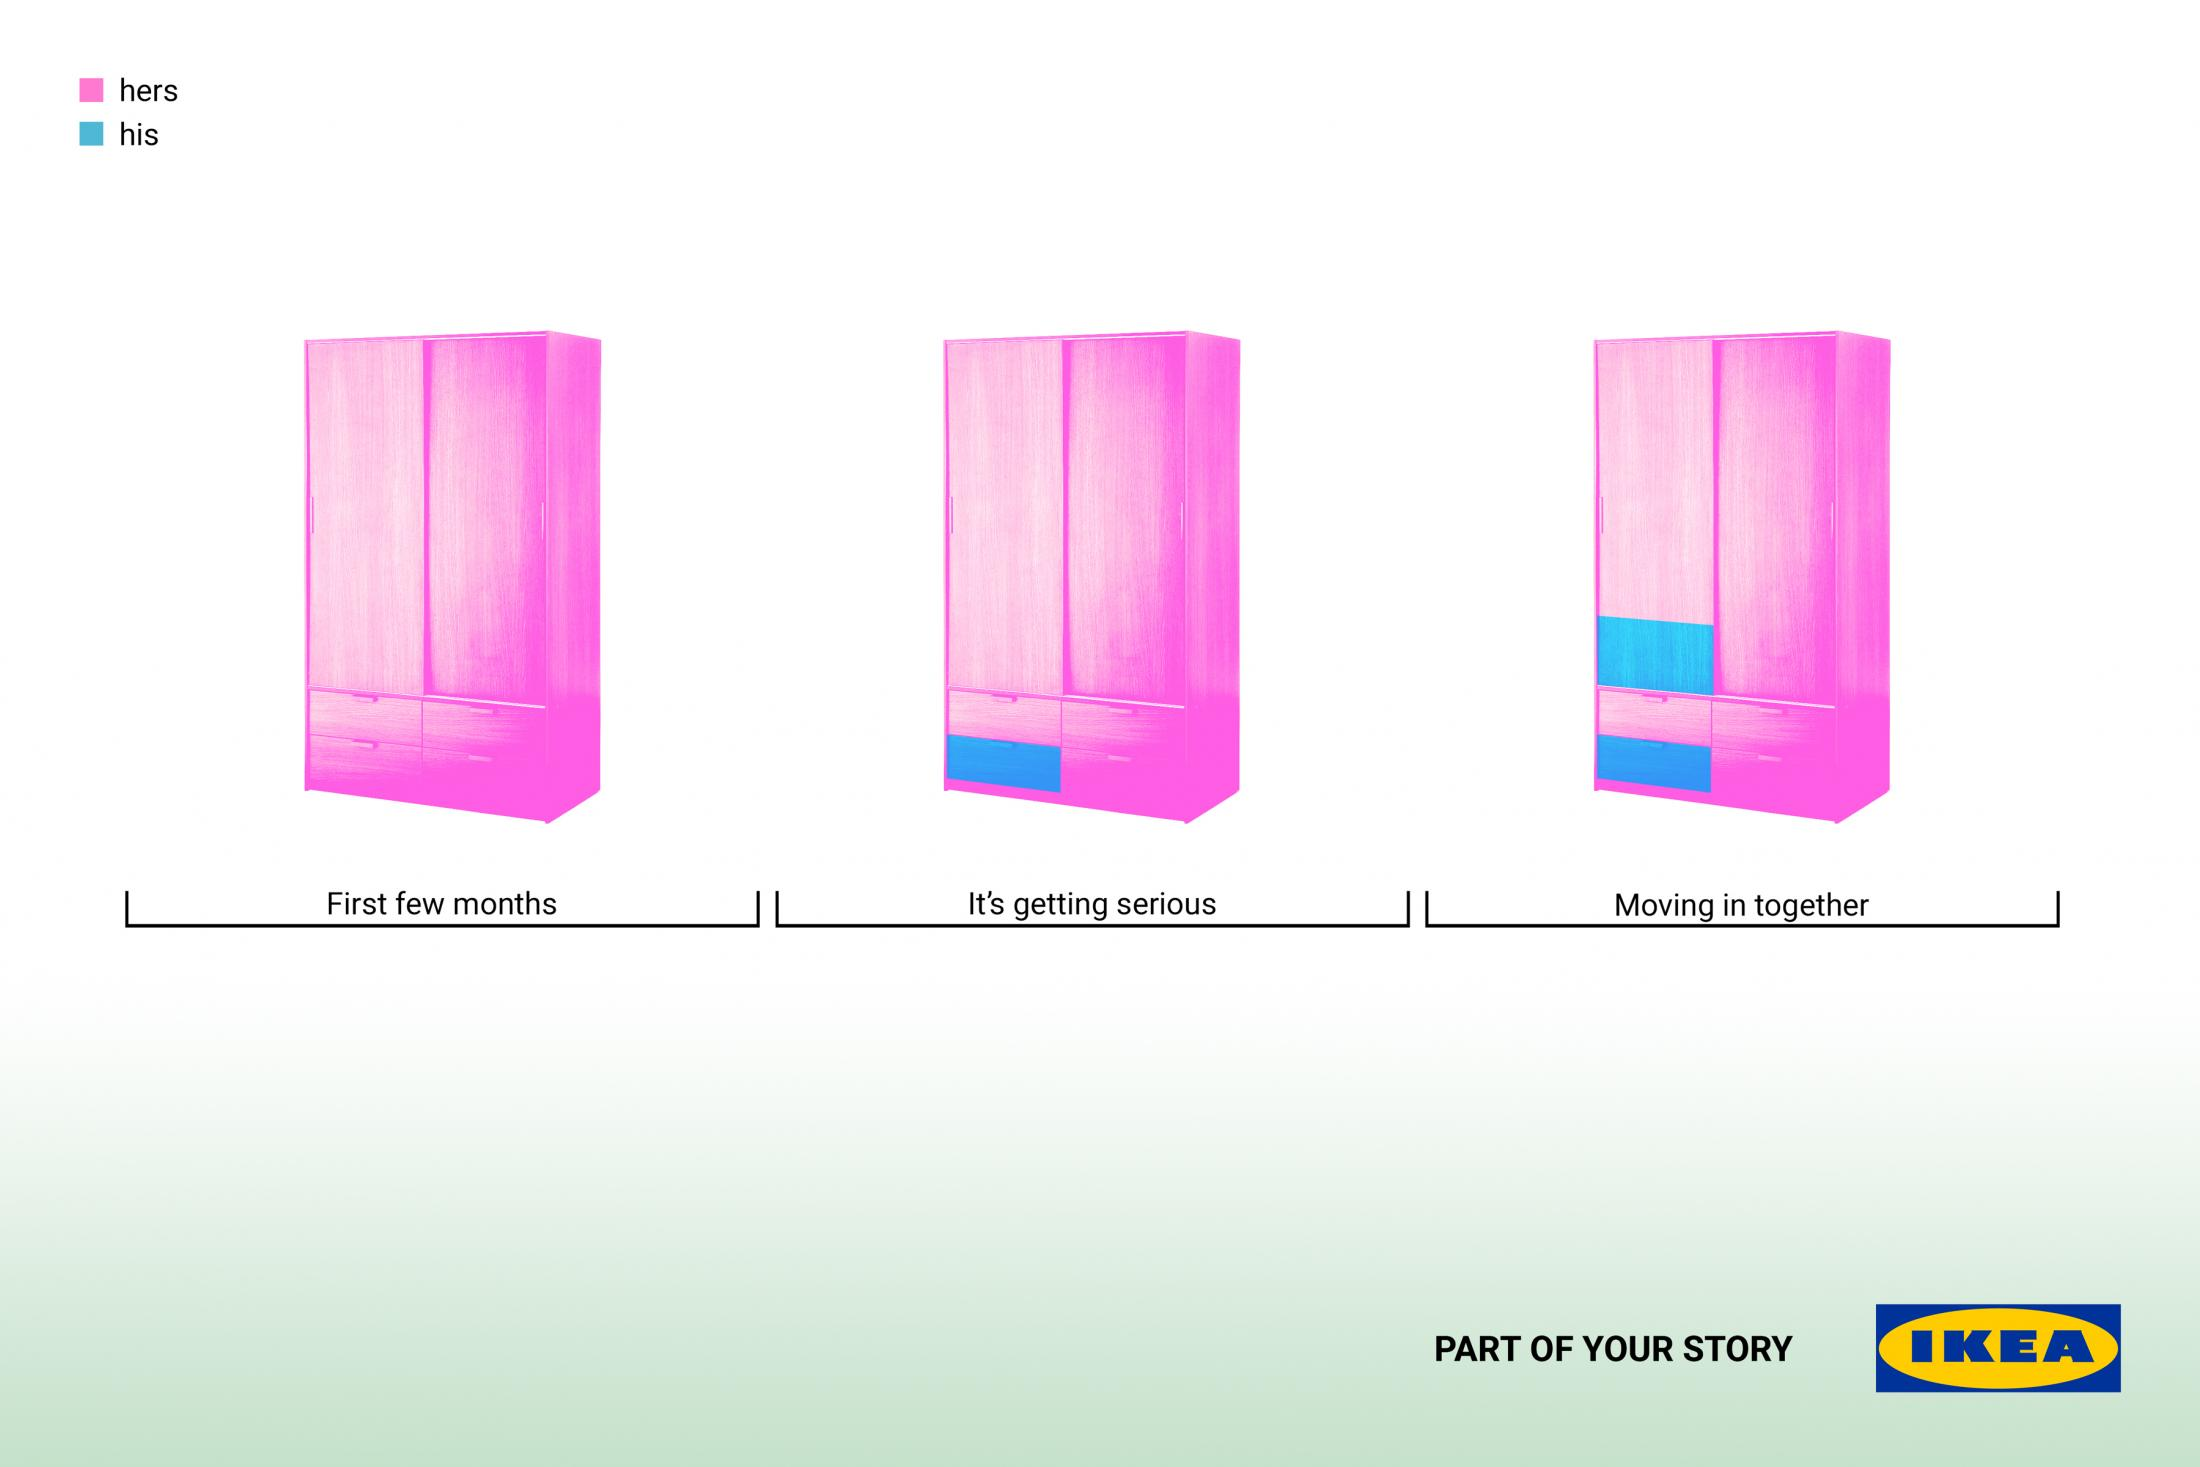 IKEA Print Ad - Part of your story - Closet